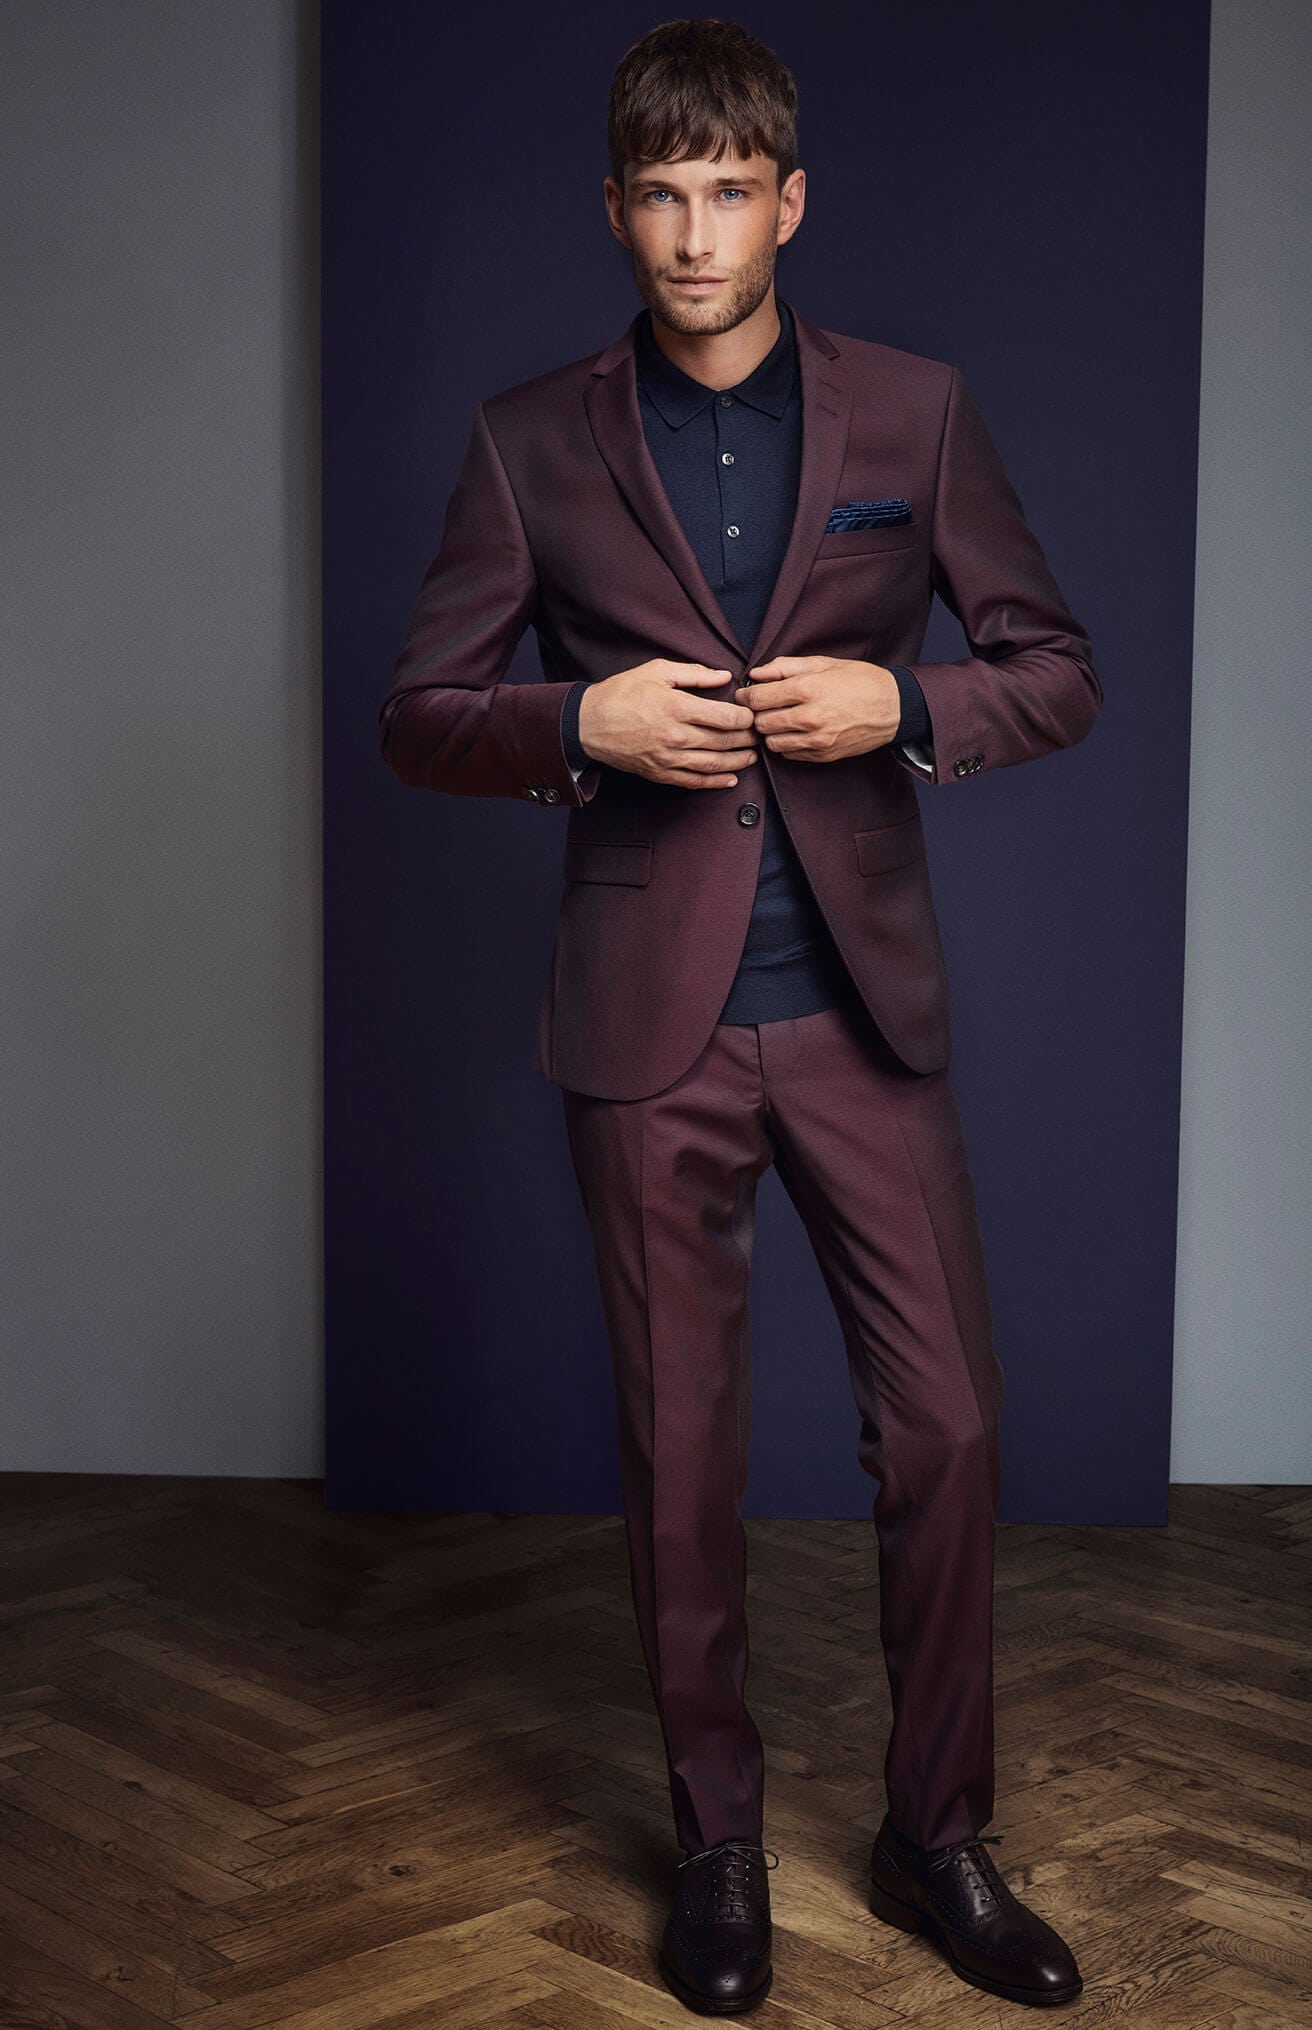 SUIT_STYLING_3